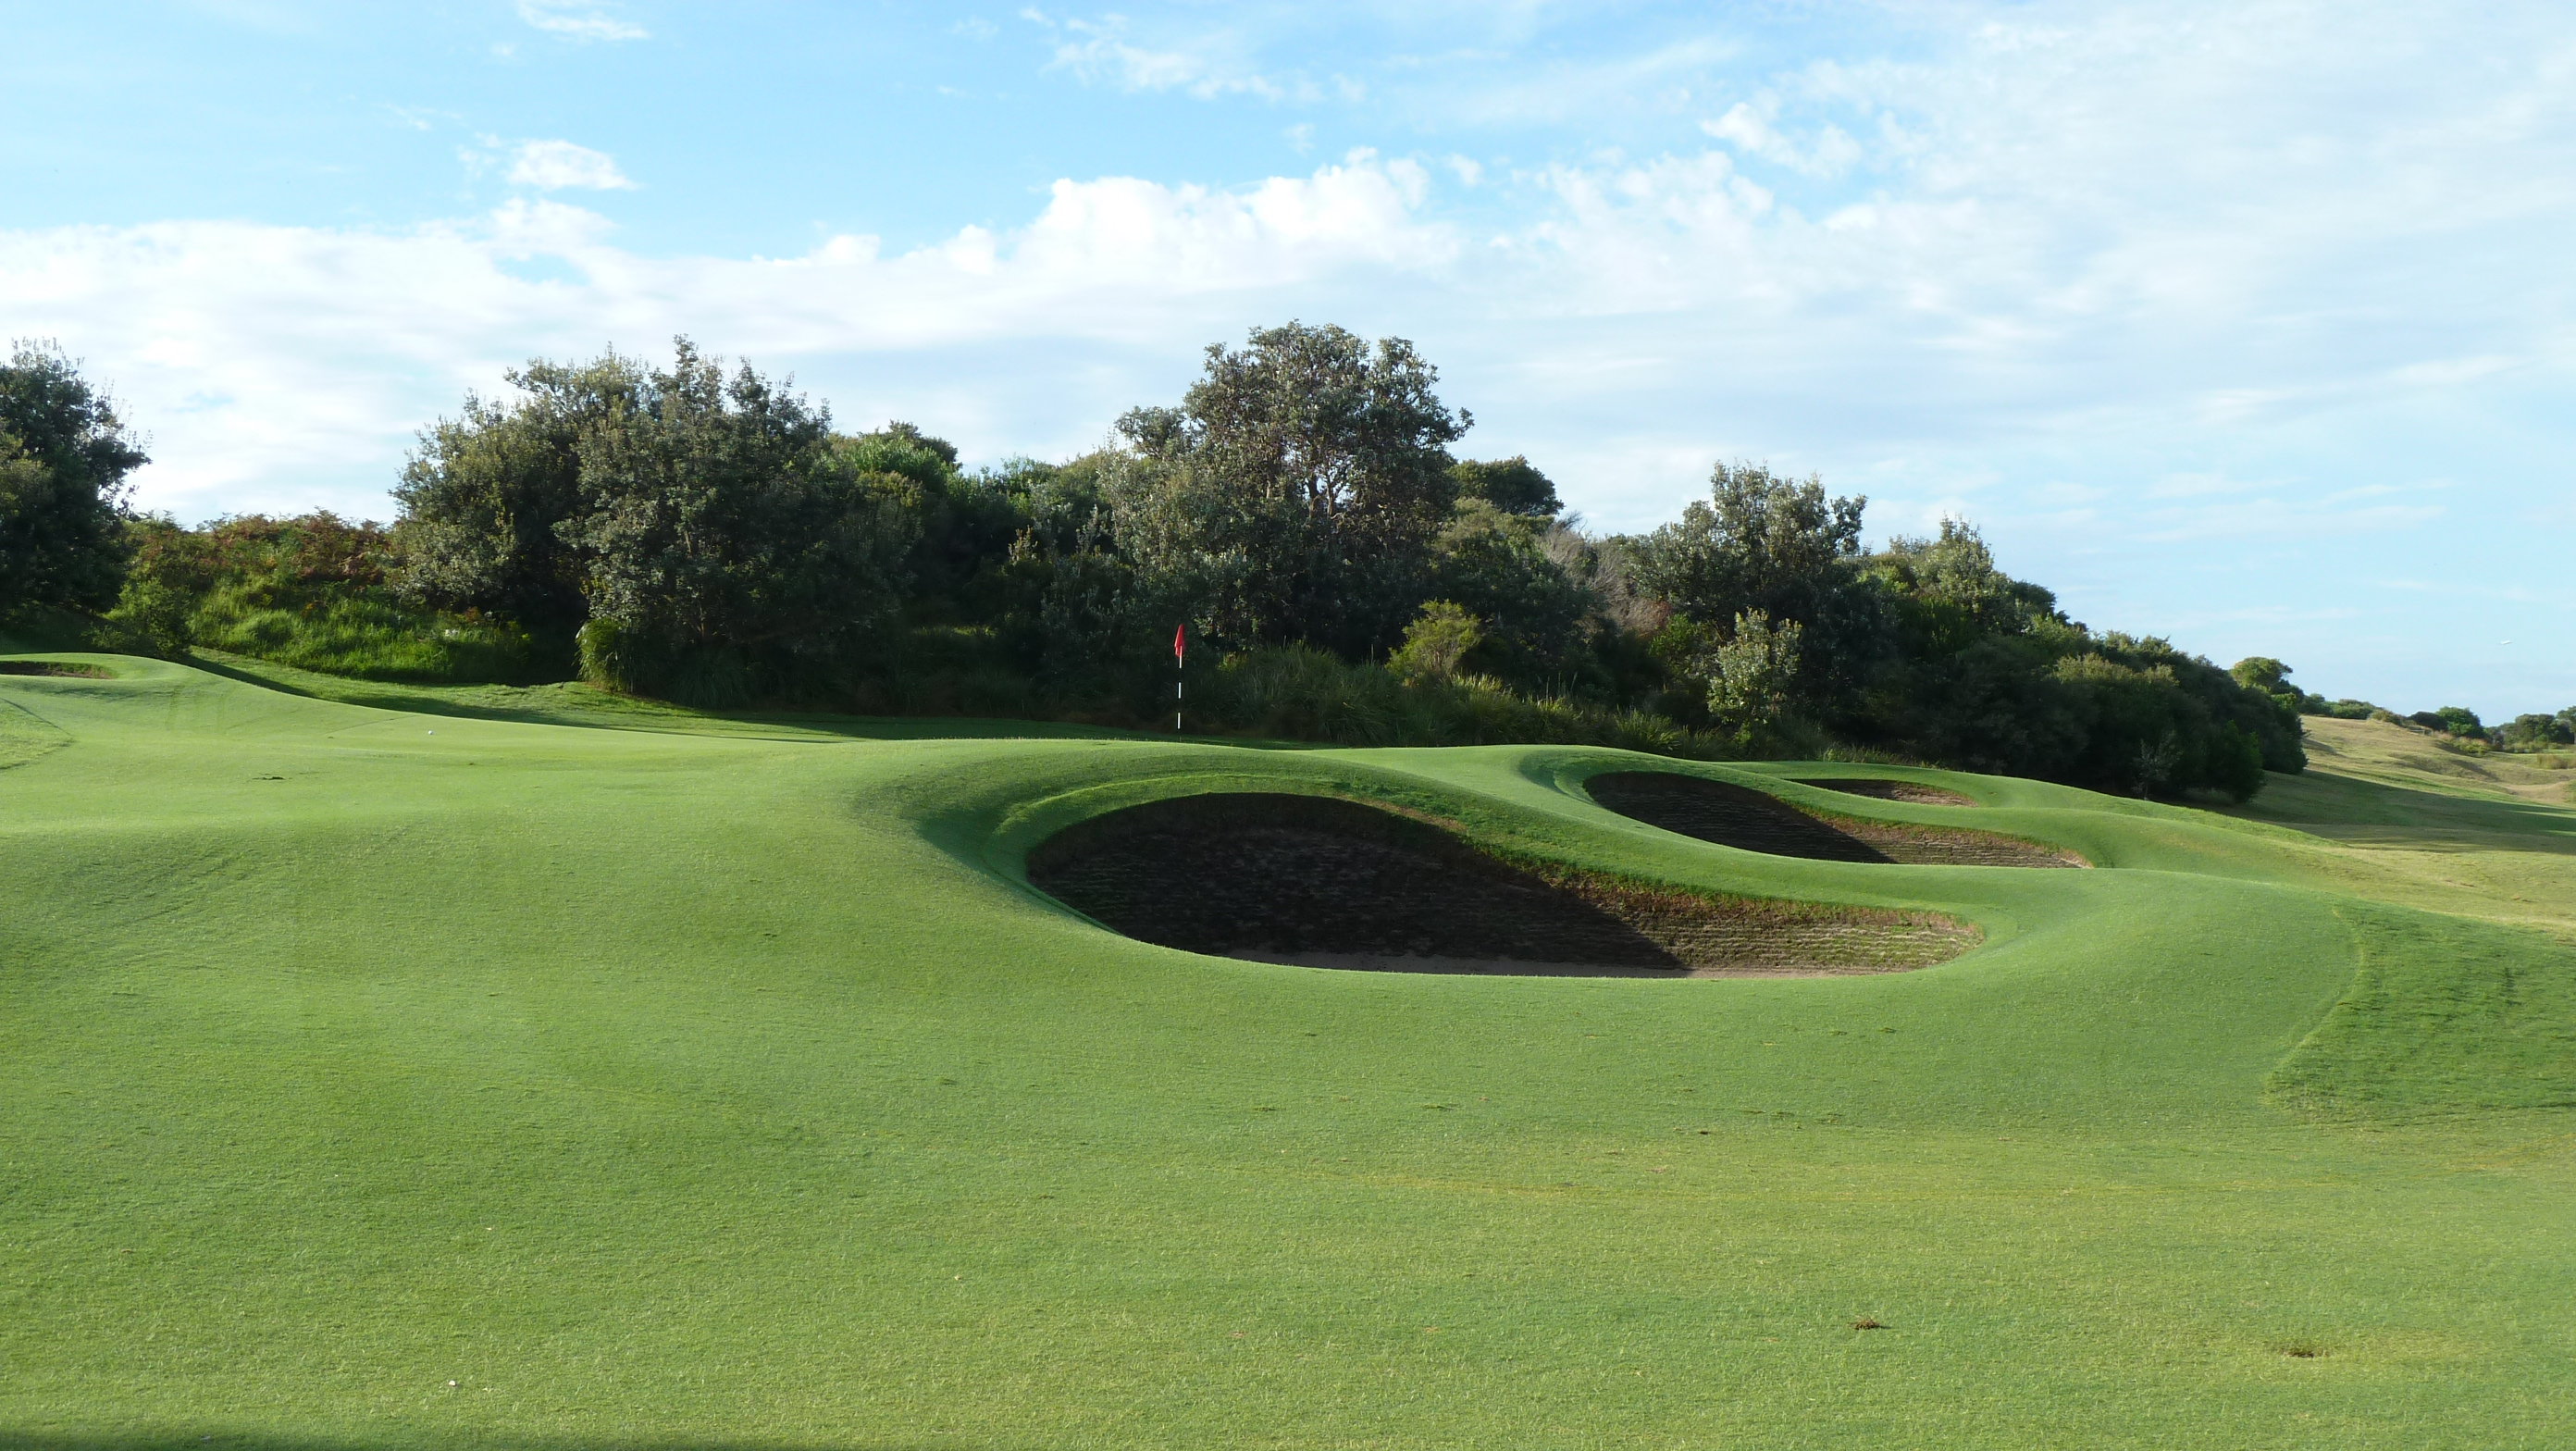 The 10th green at NSW Golf Club